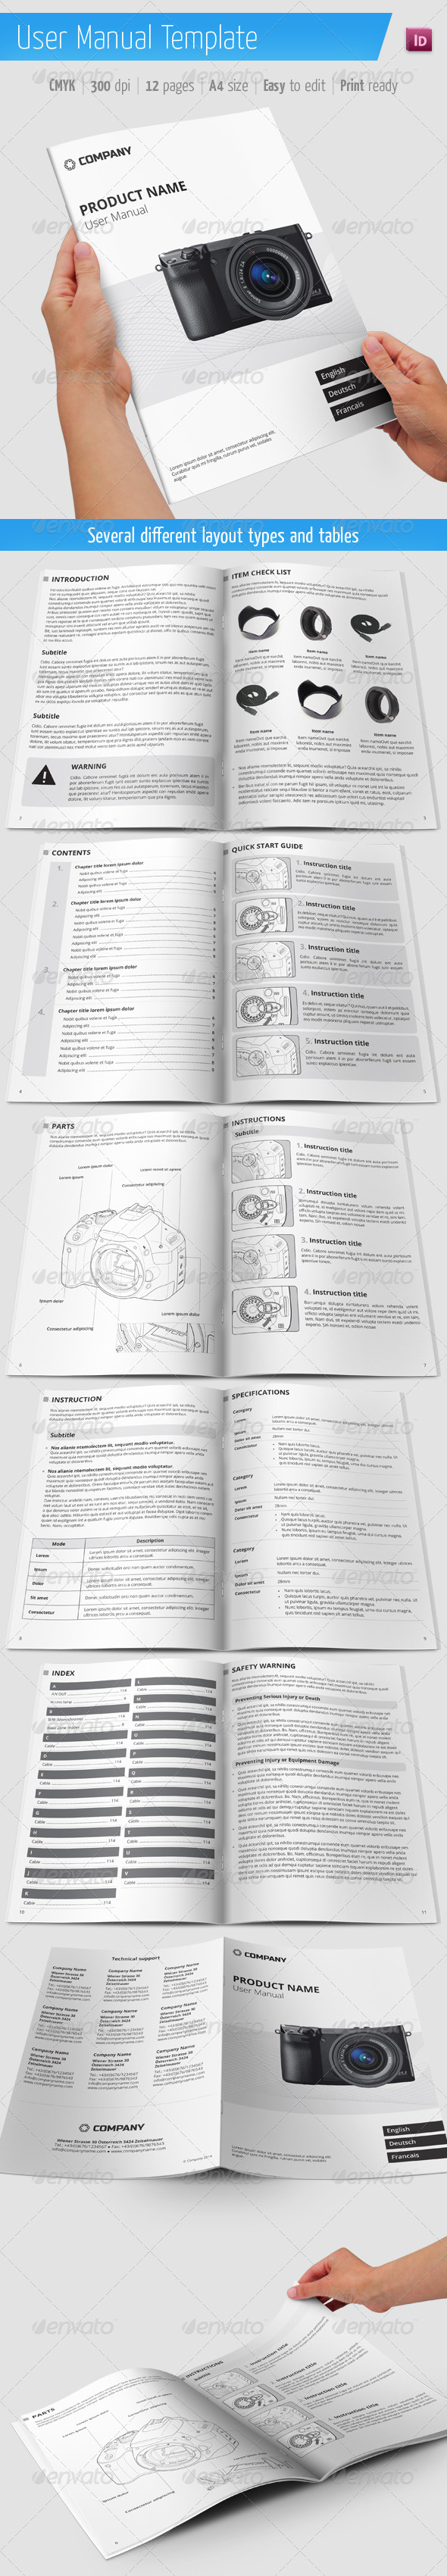 user manual document template - user manual template graphicriver